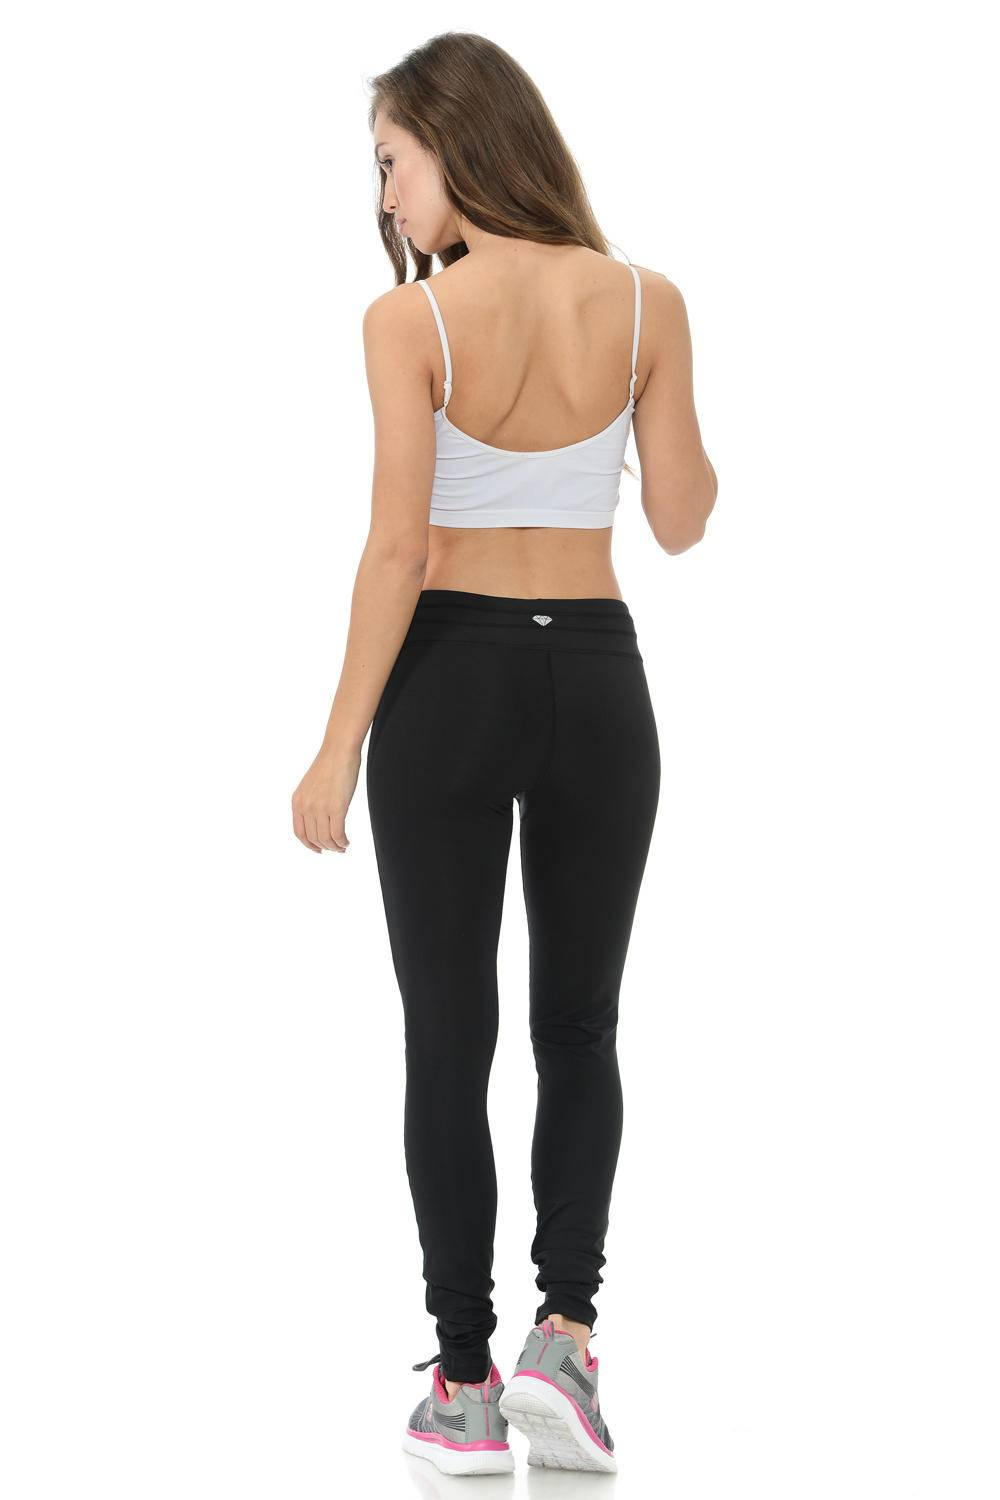 433edd4edfbf4 Sweet Look Women's Power Flex Yoga Pants Leggings Sportswear · Style C41